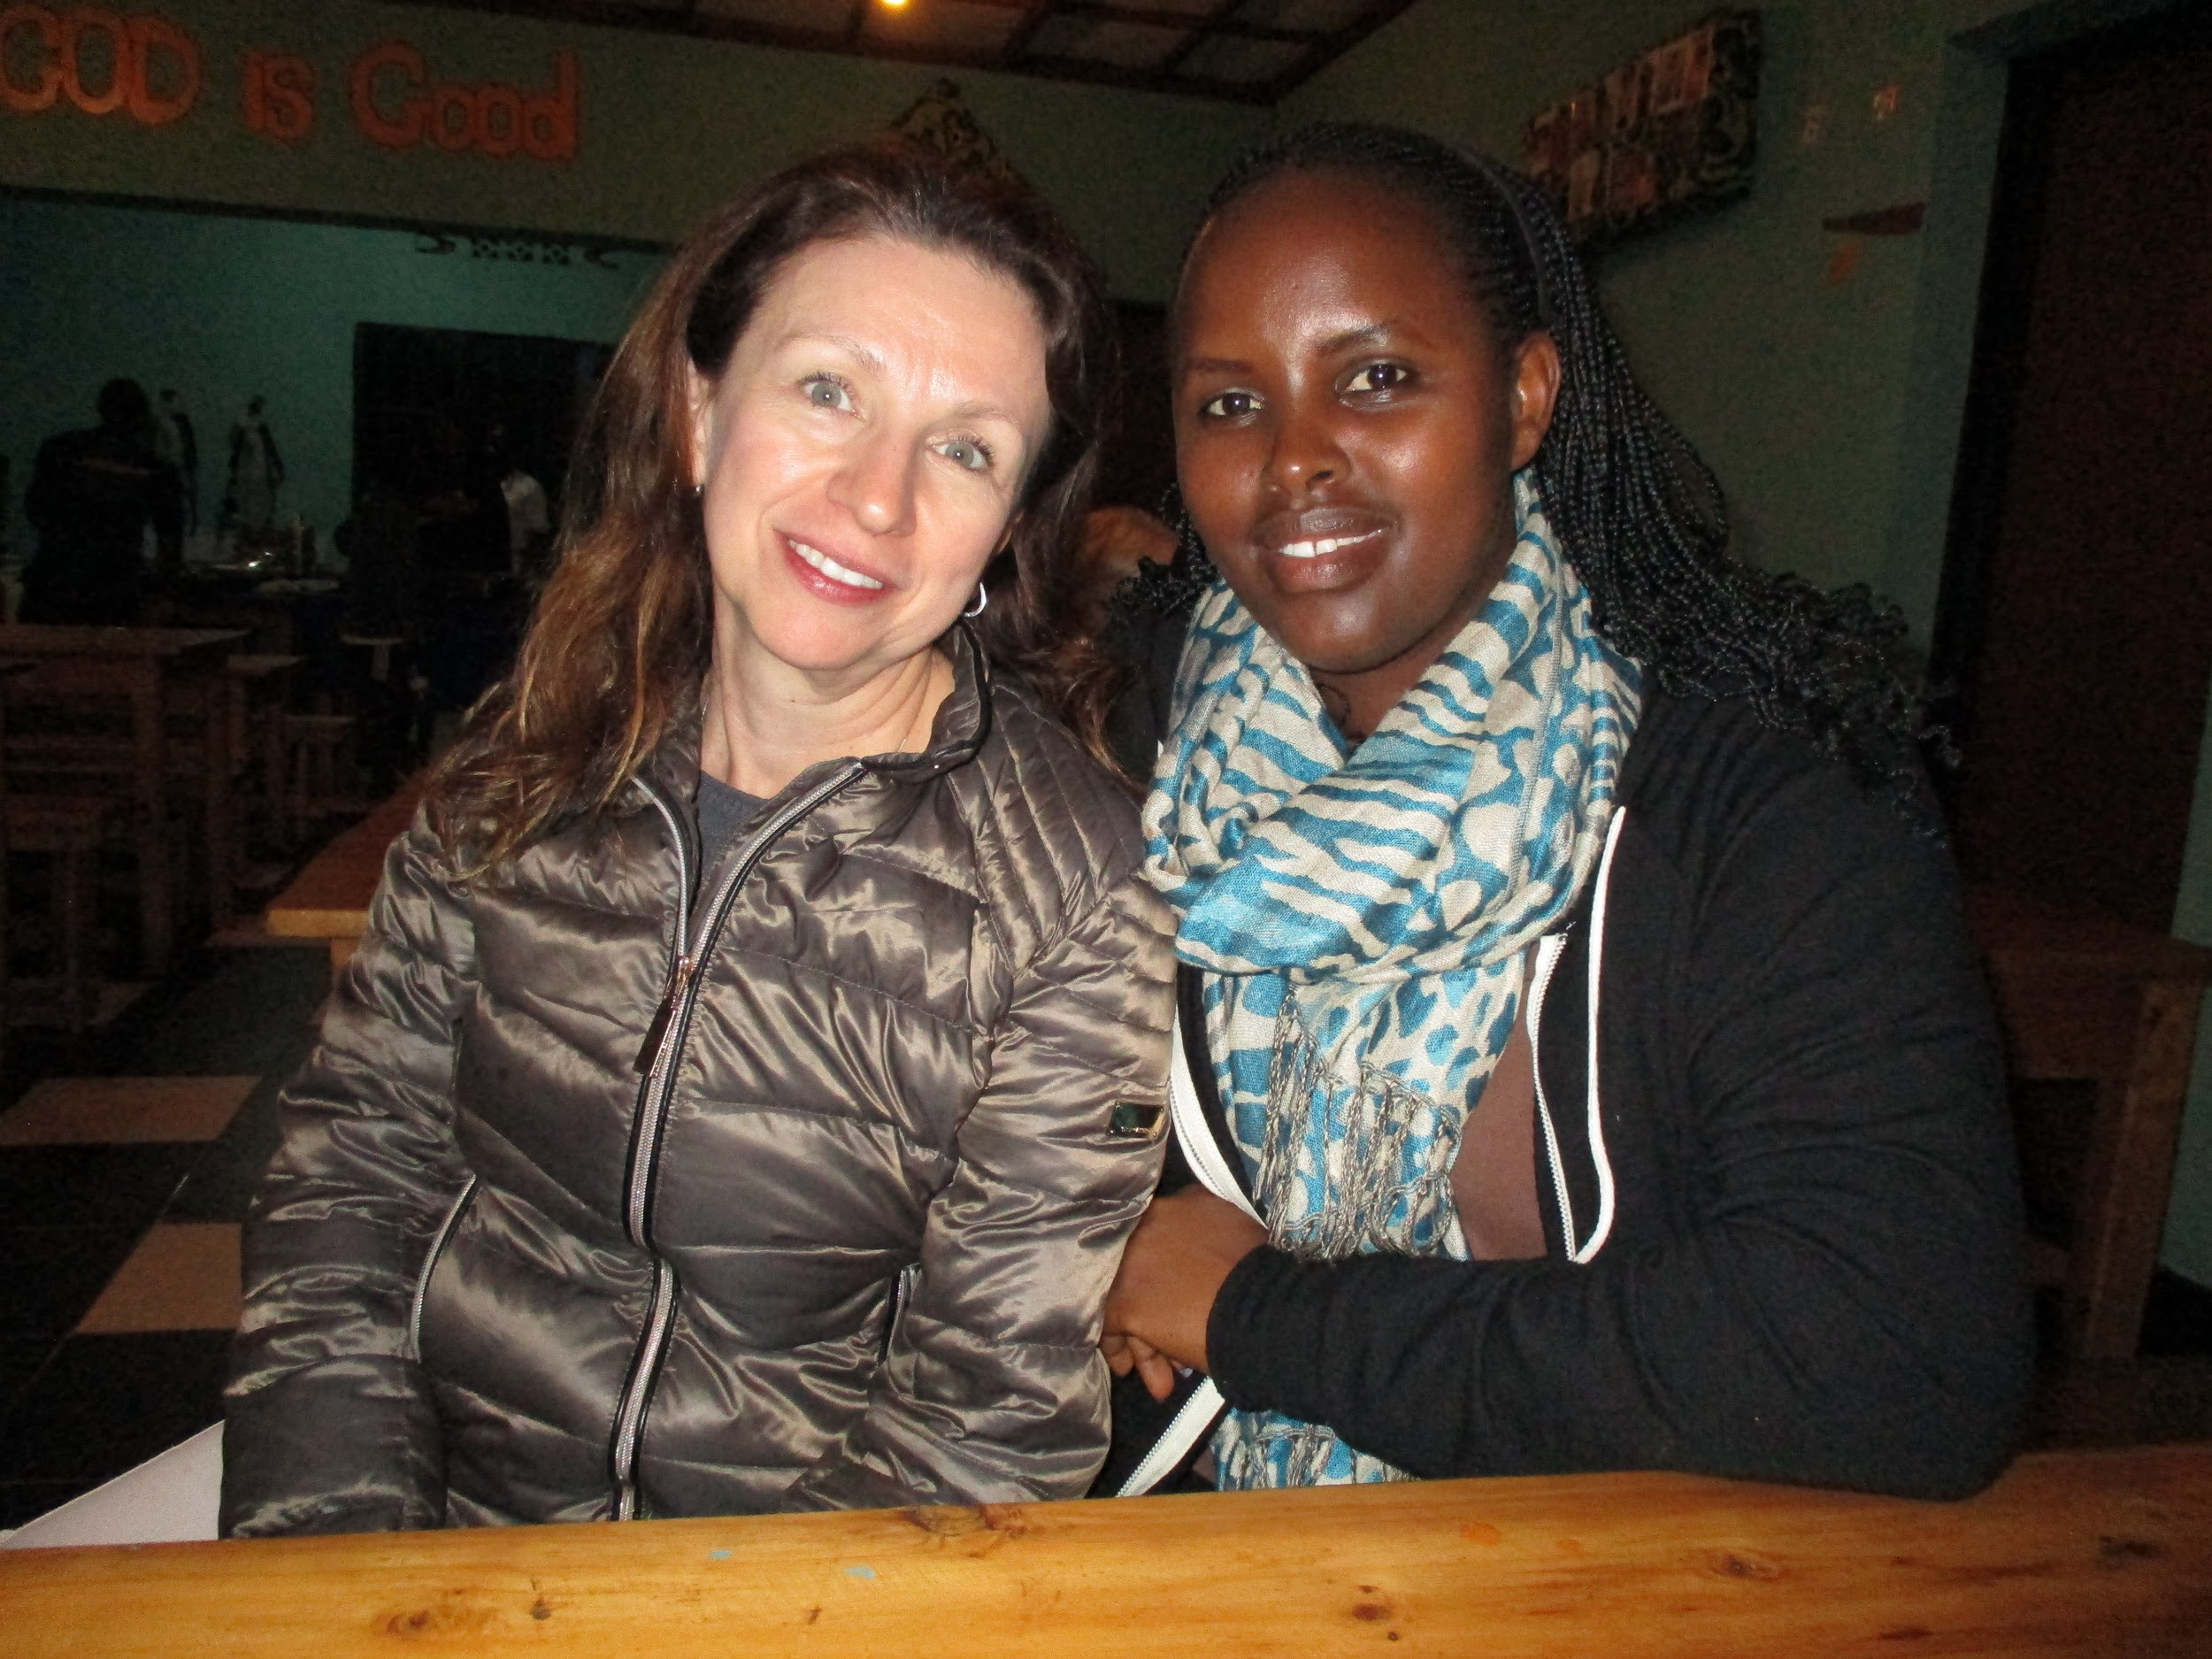 Global Engagement Institute Rwanda program manager Franciose Uzamukunda and Gabrielle formed a new friendship. Every friend is valued. Amazing women.